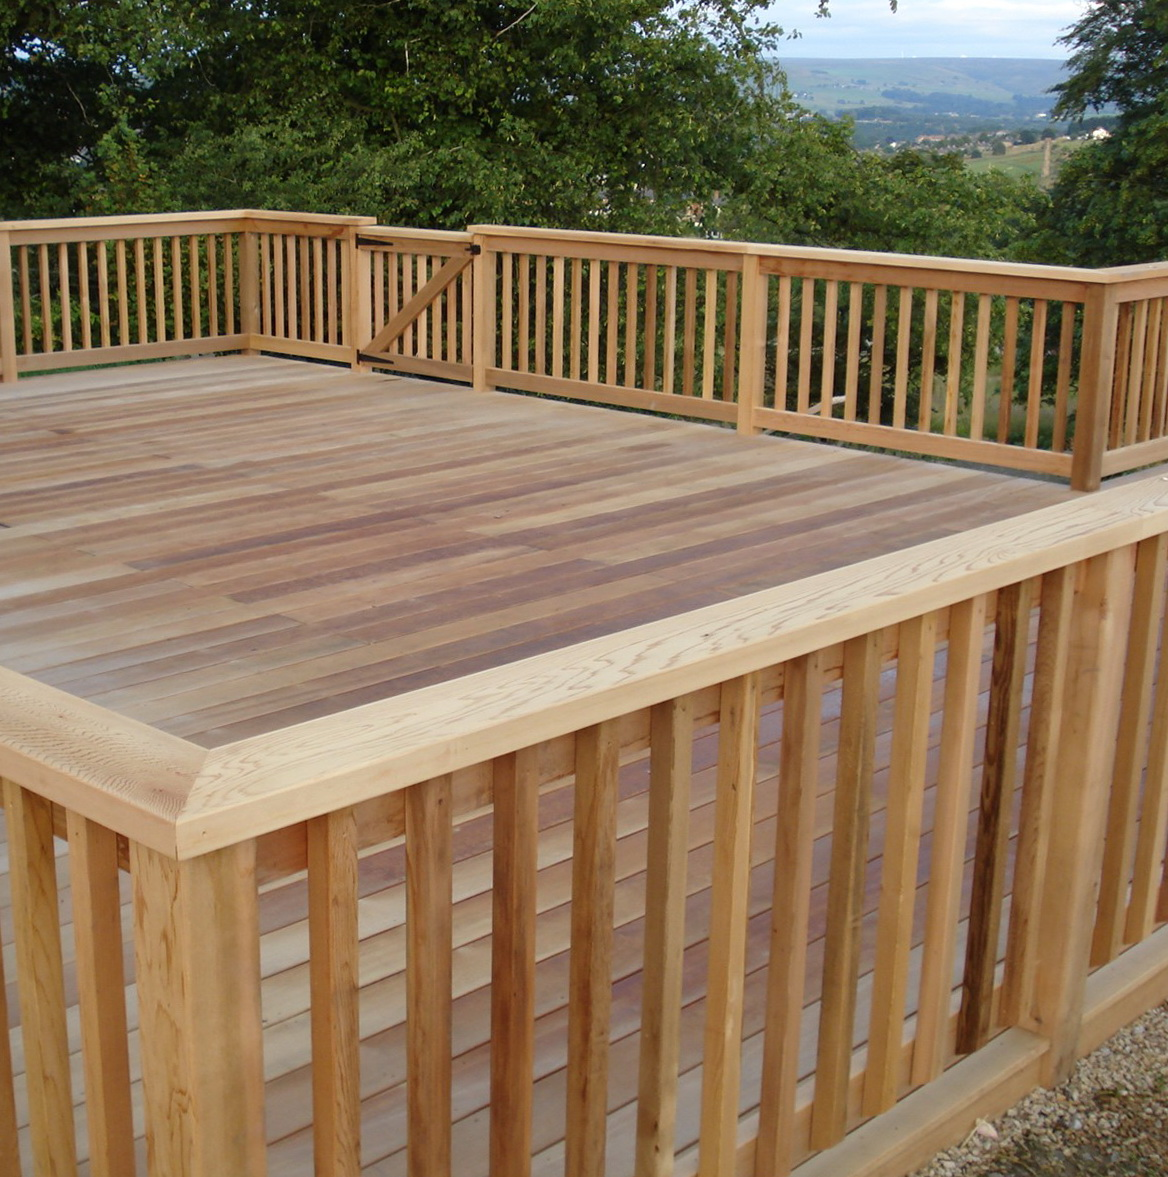 Wood decking exotic wooden deck tile for exterior floors for External timber decking